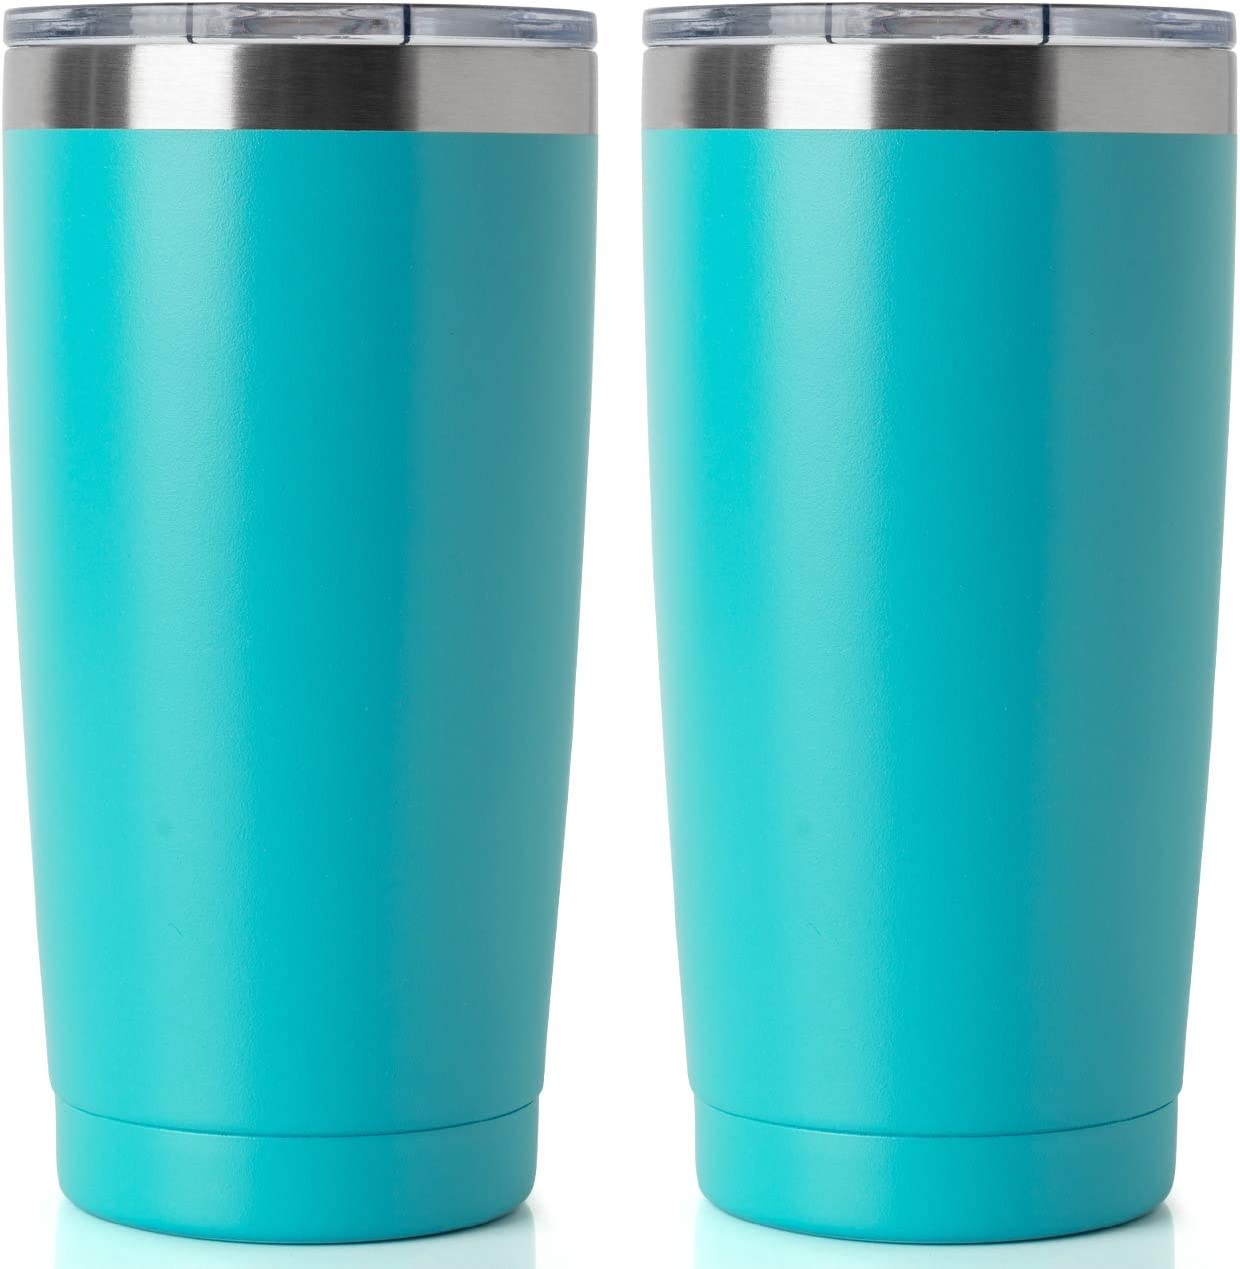 20oz Tumbler Double Wall Vacuum Insulated Coffee Mug Stainless Steel Coffee Cup with Lid, Travel Mug Works Great for Ice Drink, Hot Beverage (2 pack, Turquoise)